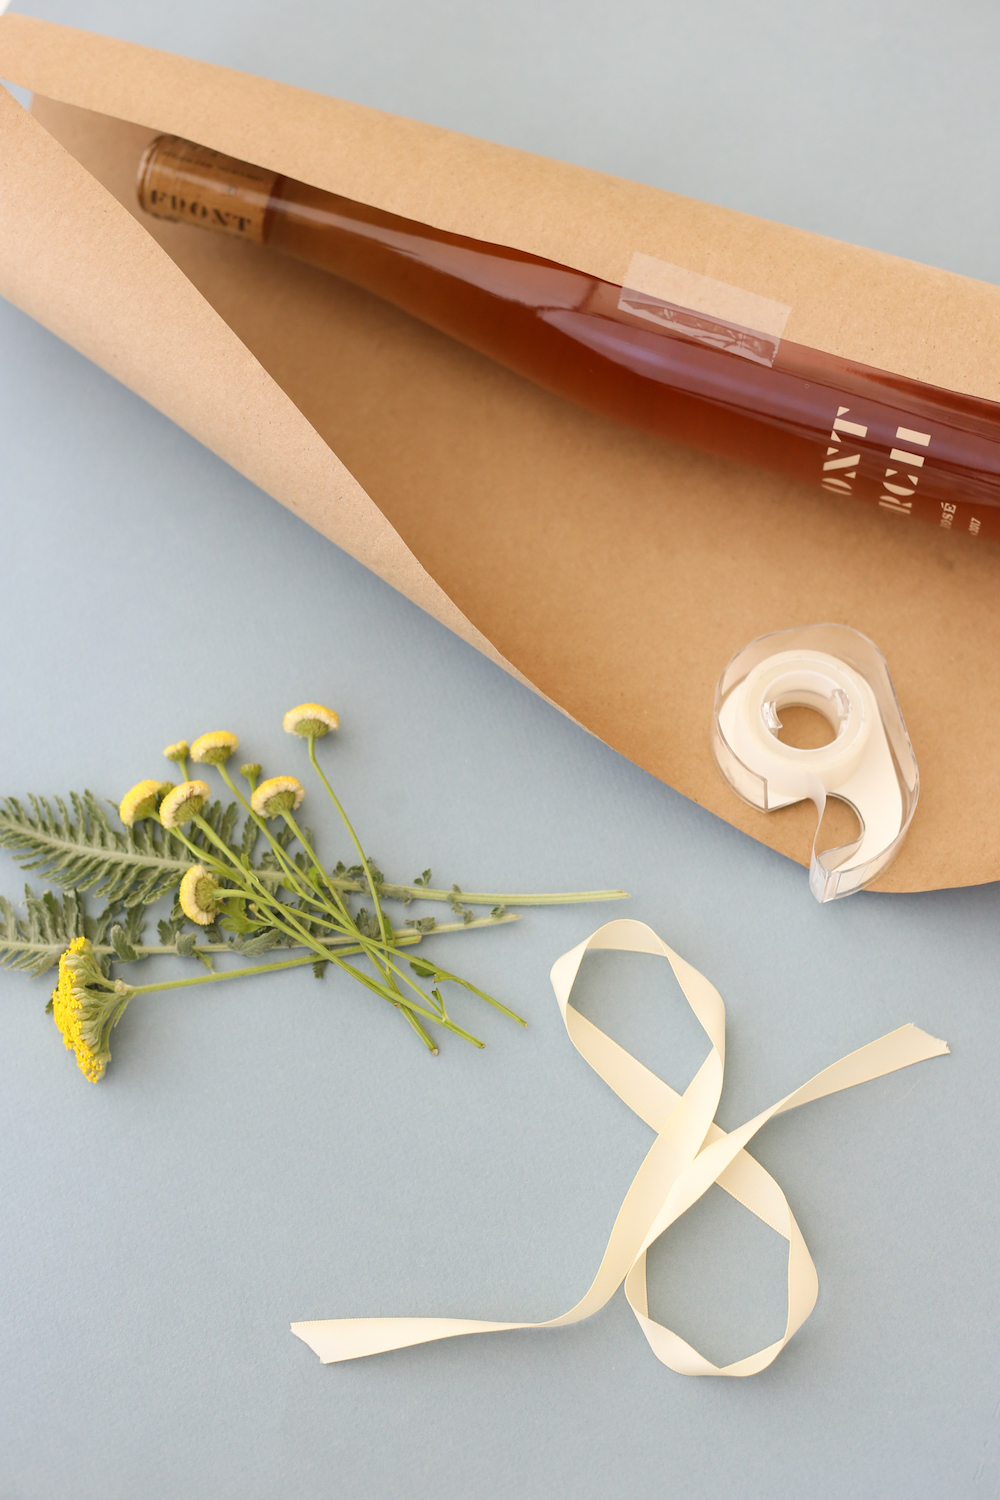 Wine bottle in craft paper with tape, flowers, and ribbon